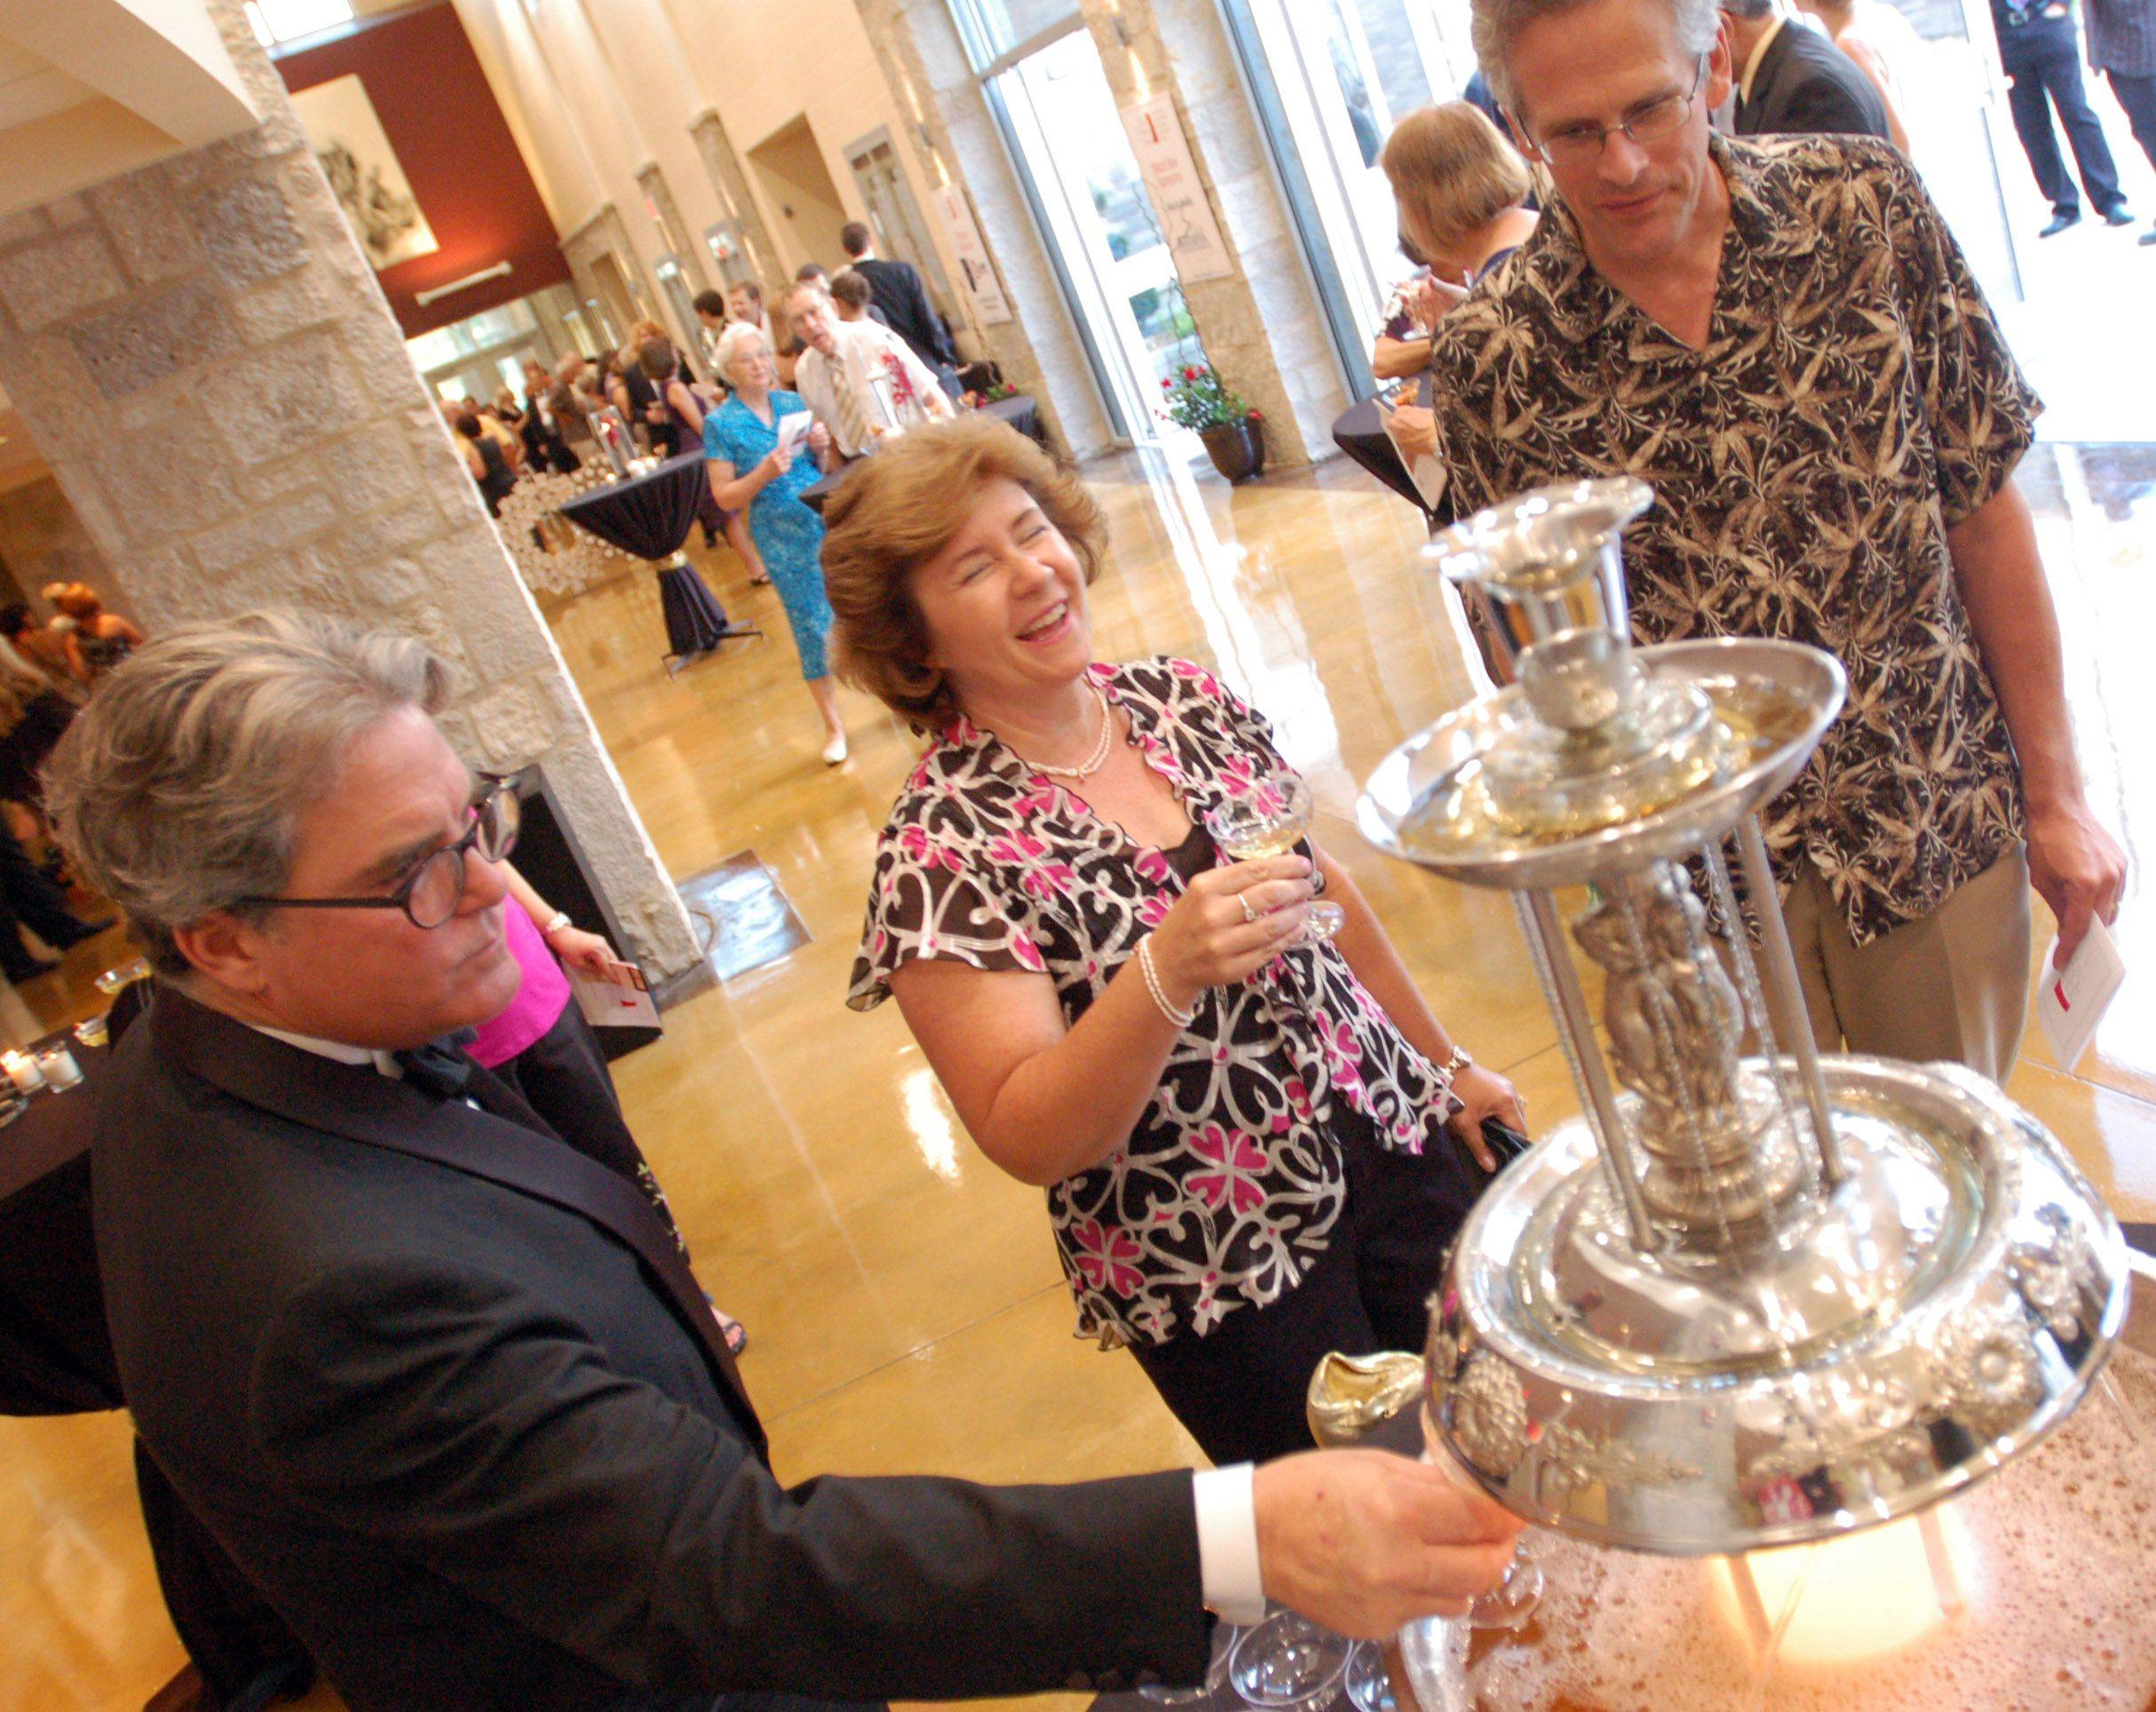 Vincent Gatto of Batavia, left, along with Stephanie Knappe, middle, and her husband, Ed Knappe, right, fill their glasses at the refreshment fountain, during the Batavia Fine Arts Centre's Red Carpet Gala opening on Saturday. The arts center is the school's first real auditorium, and will also serve as a community center for the city of Batavia.